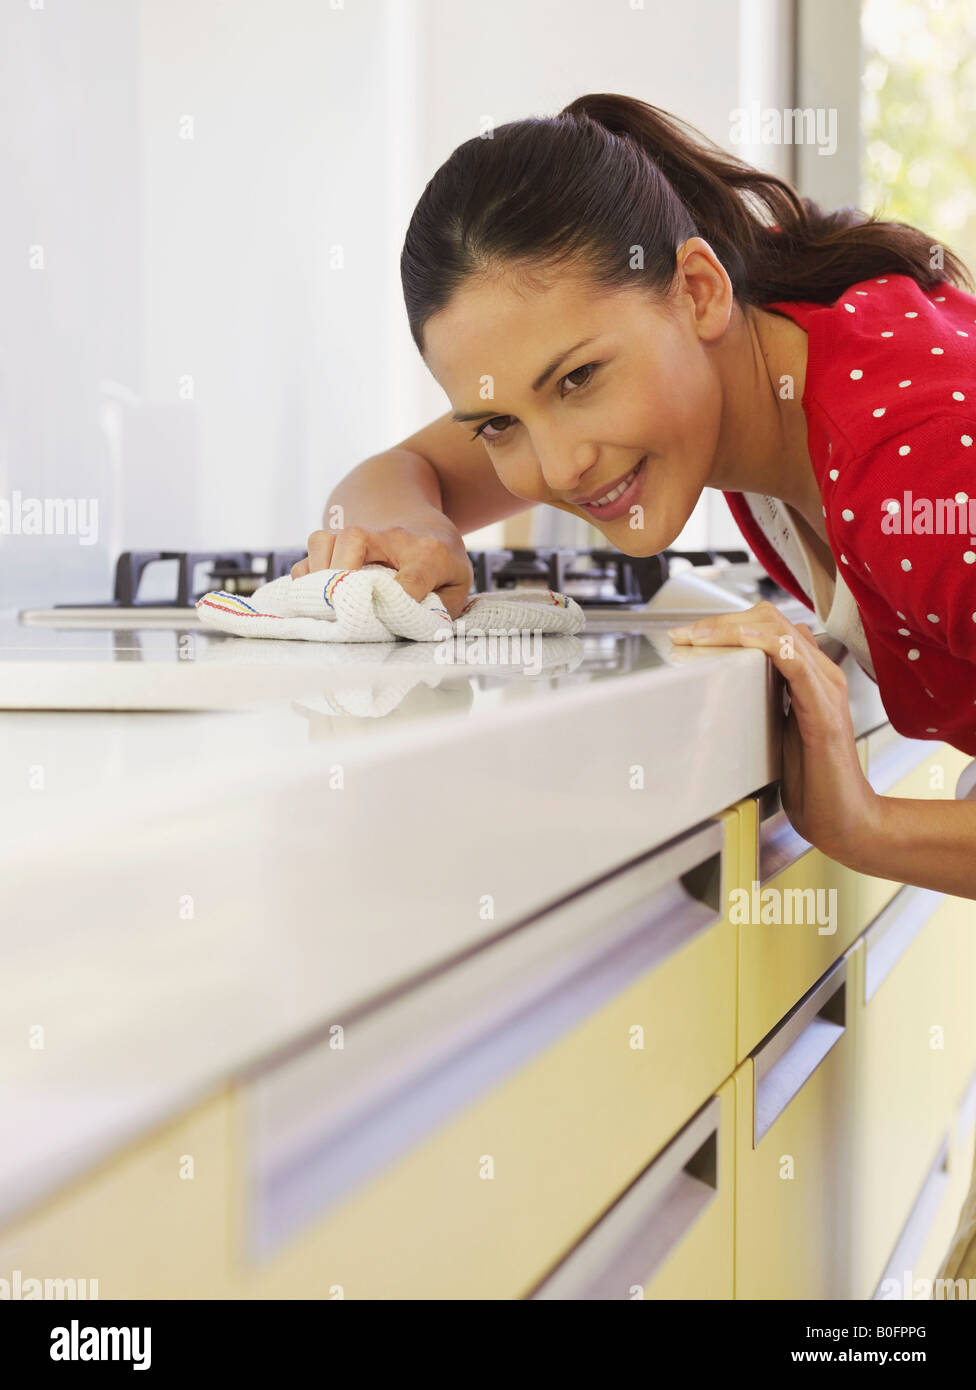 Young woman cleaning kitchen surface - Stock Image